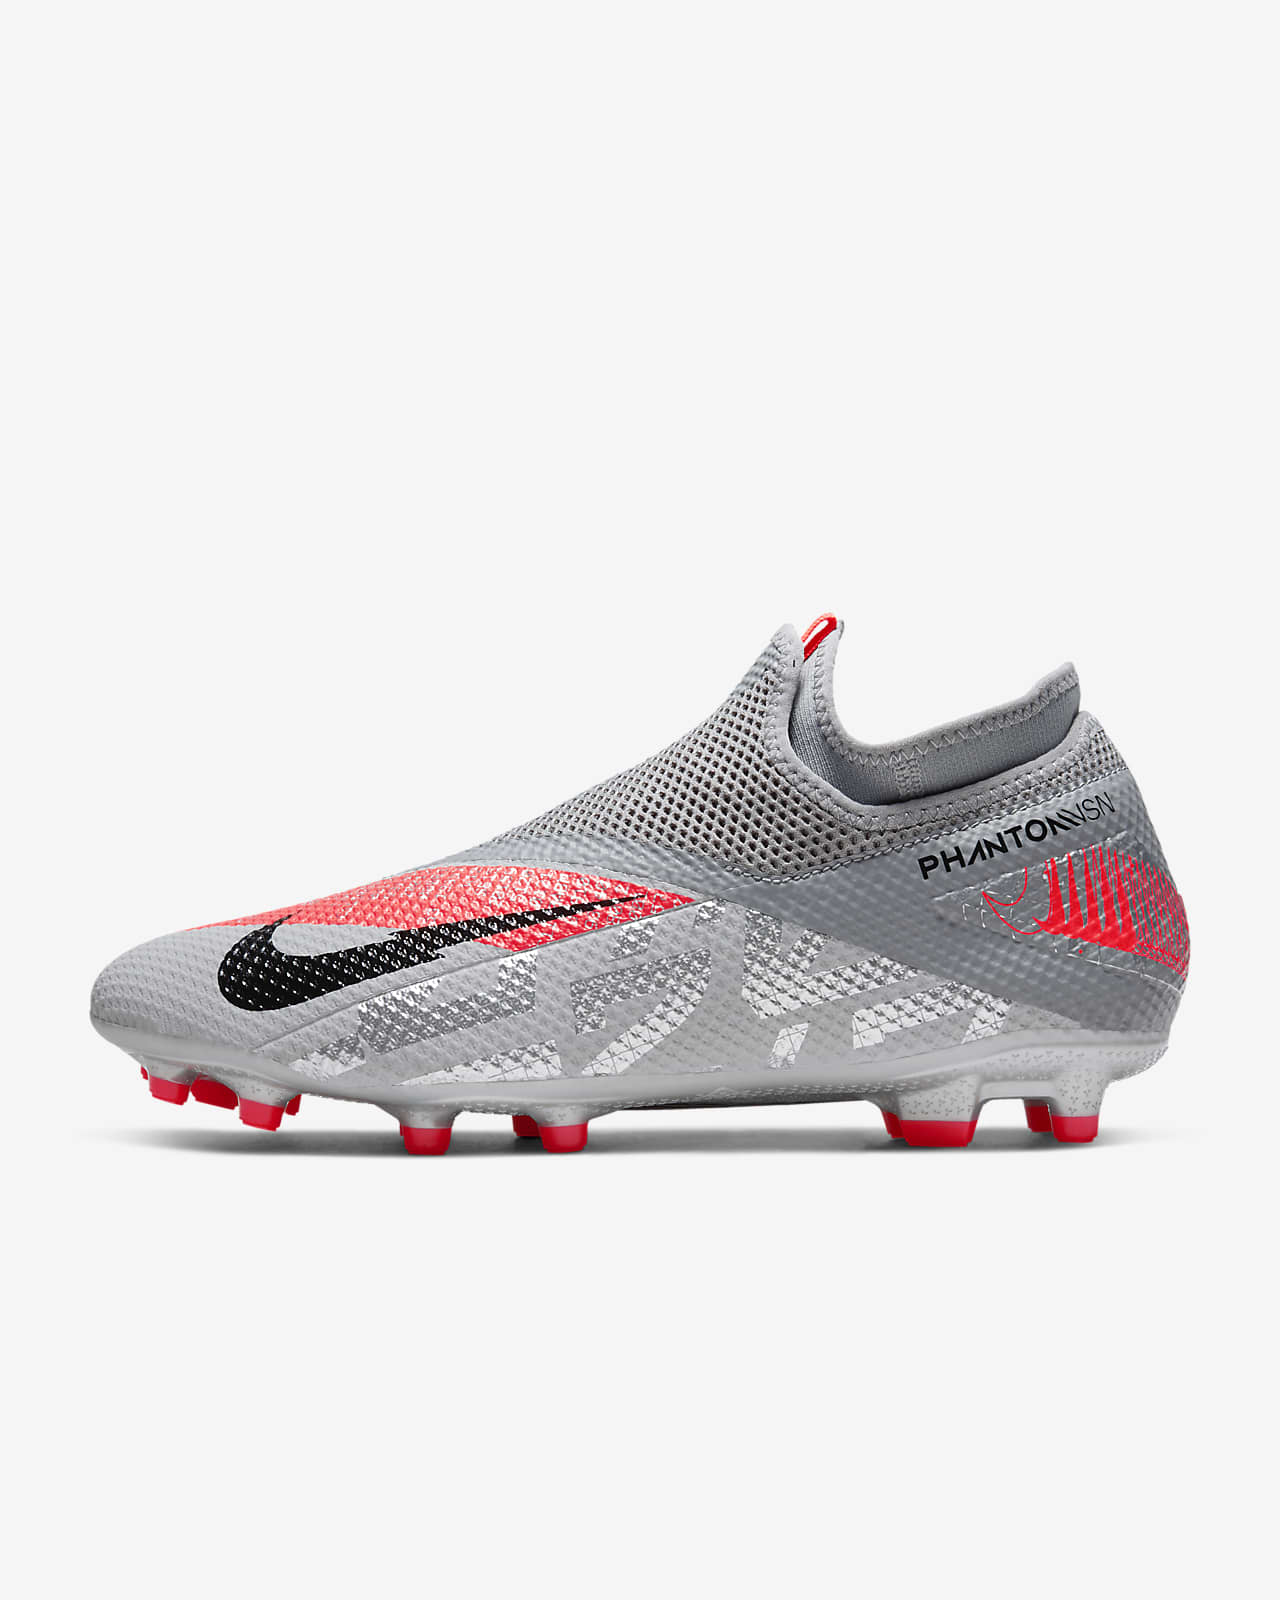 Chaussure de football multi-surfaces à crampons Nike Phantom Vision 2 Academy Dynamic Fit MG